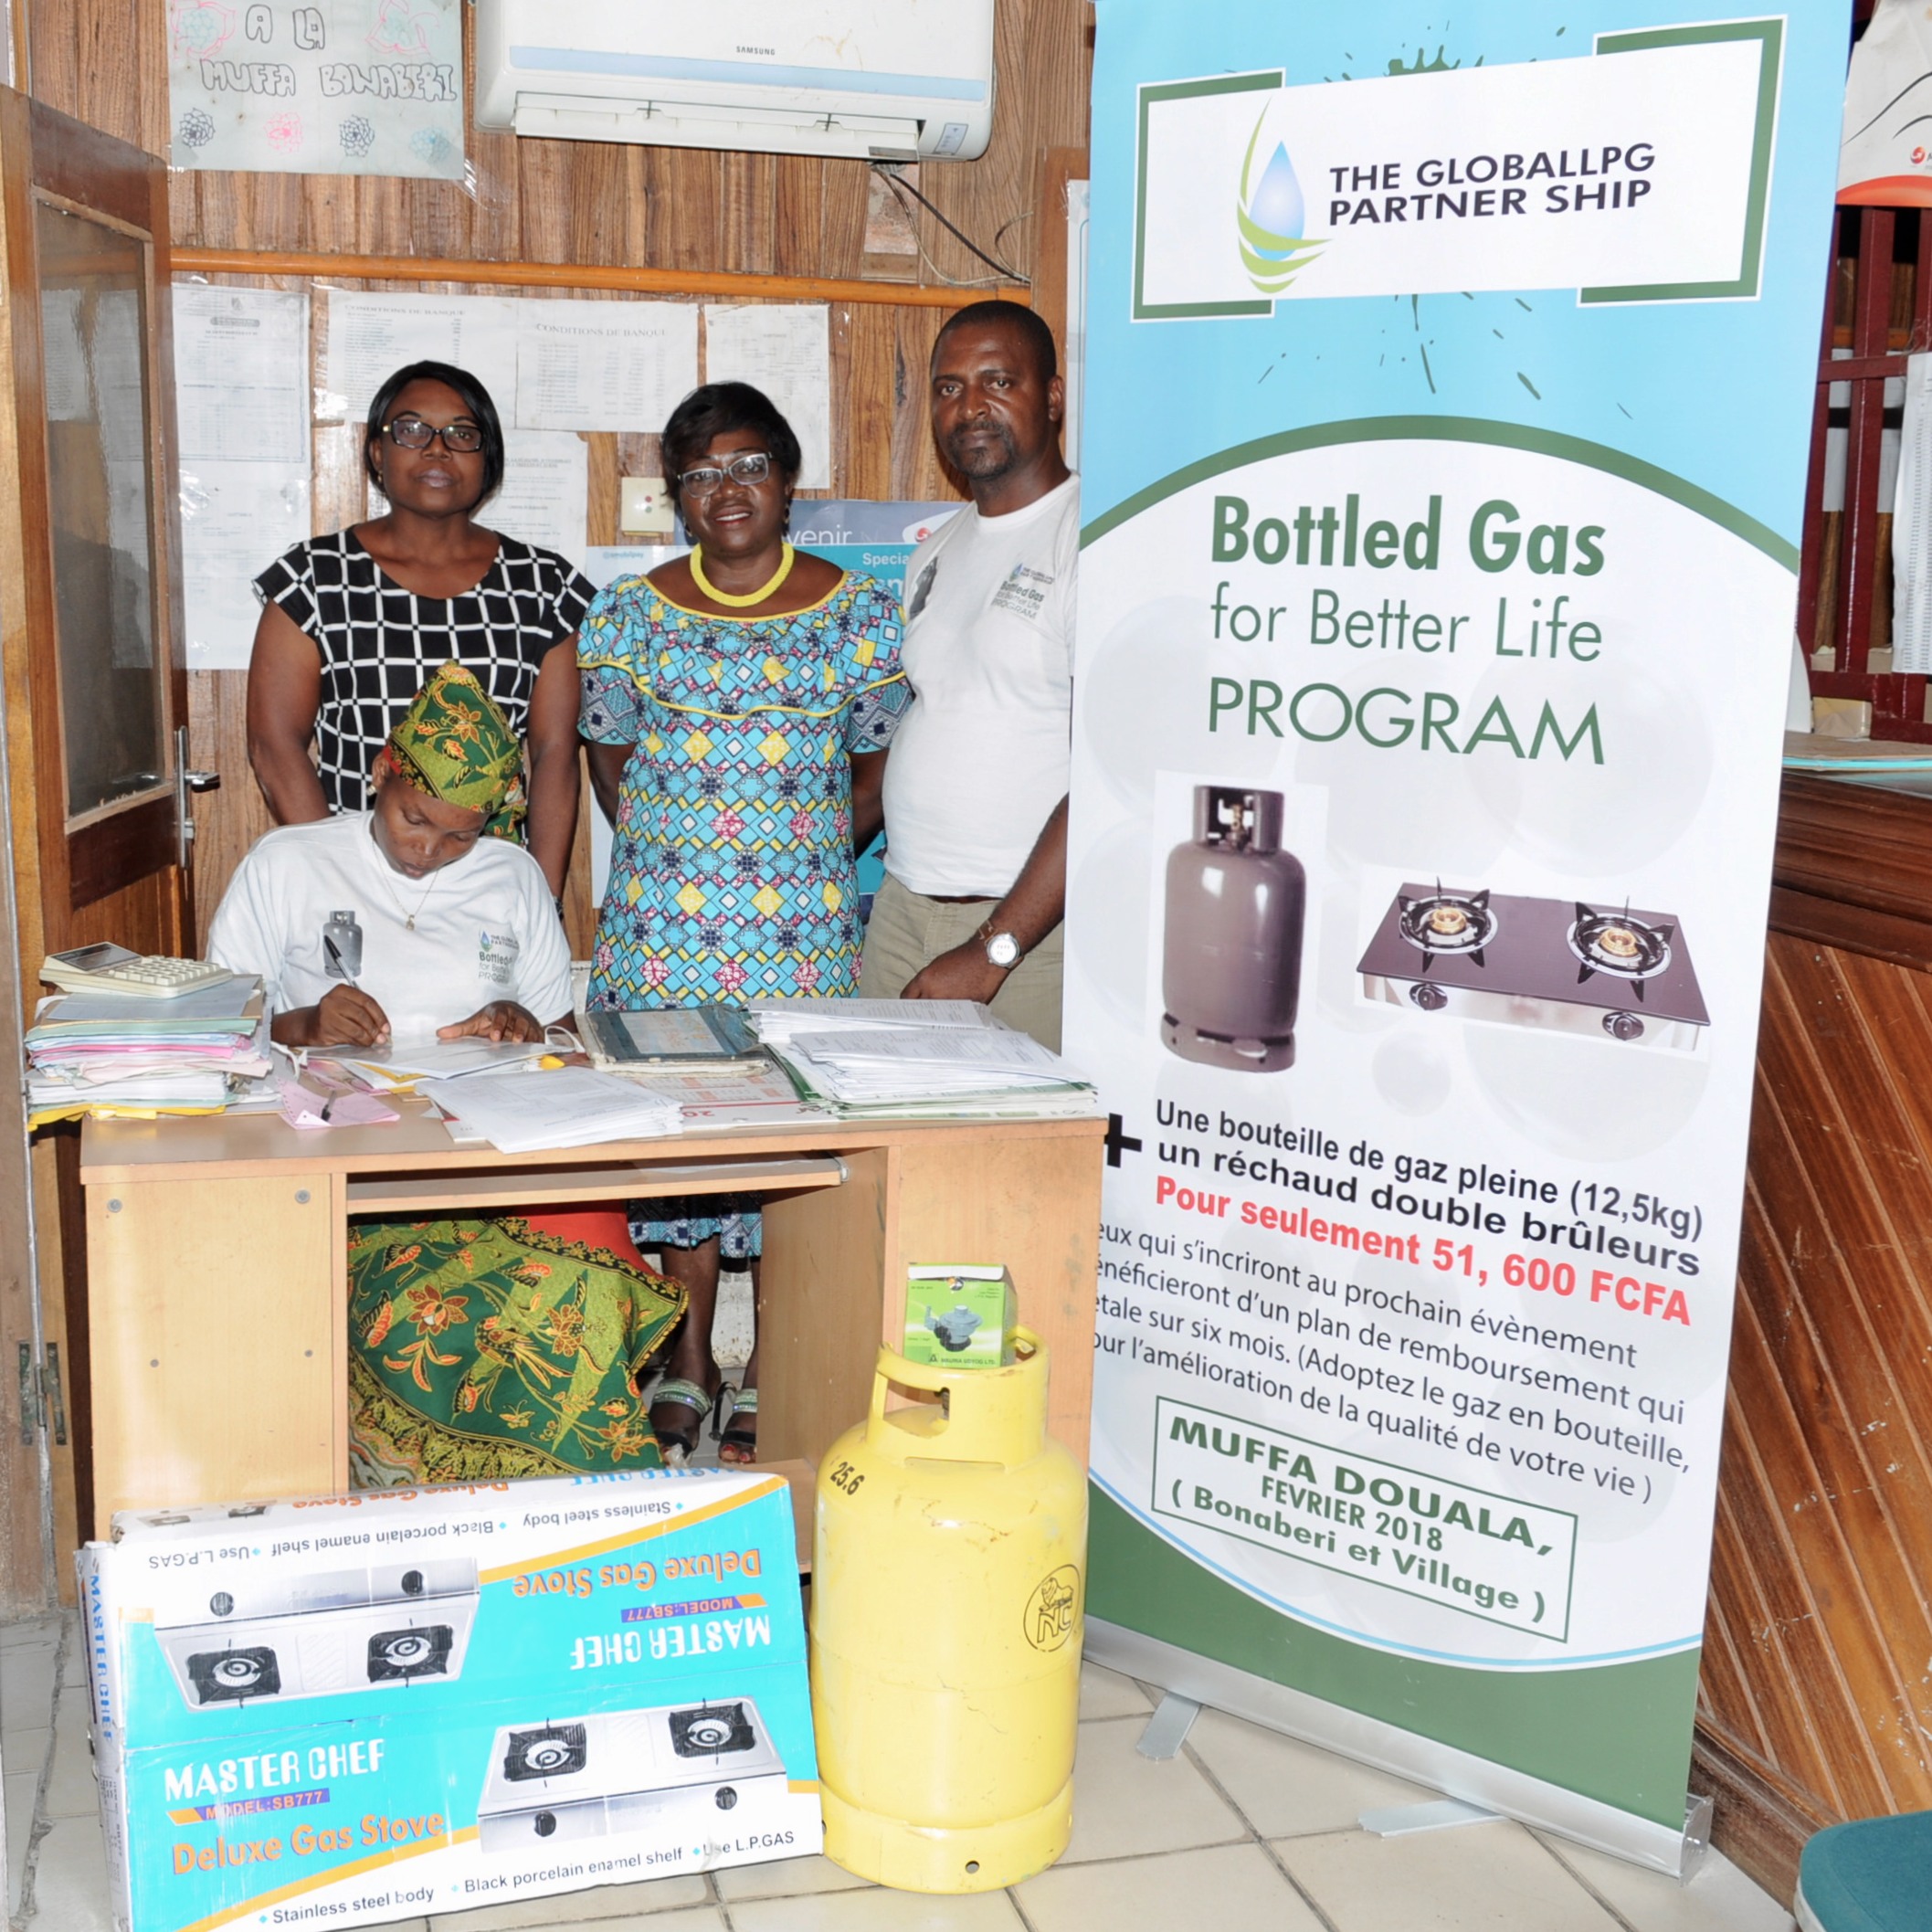 GLPGP STAFF REGISTER PARTICIPANTS FOR PHASE II OF  BOTTLED GAS FOR BETTER LIFE  AT THE OFFICES OF MICROFINANCE PARTNER, MUFFA, IN DOUALA, CAMEROON.